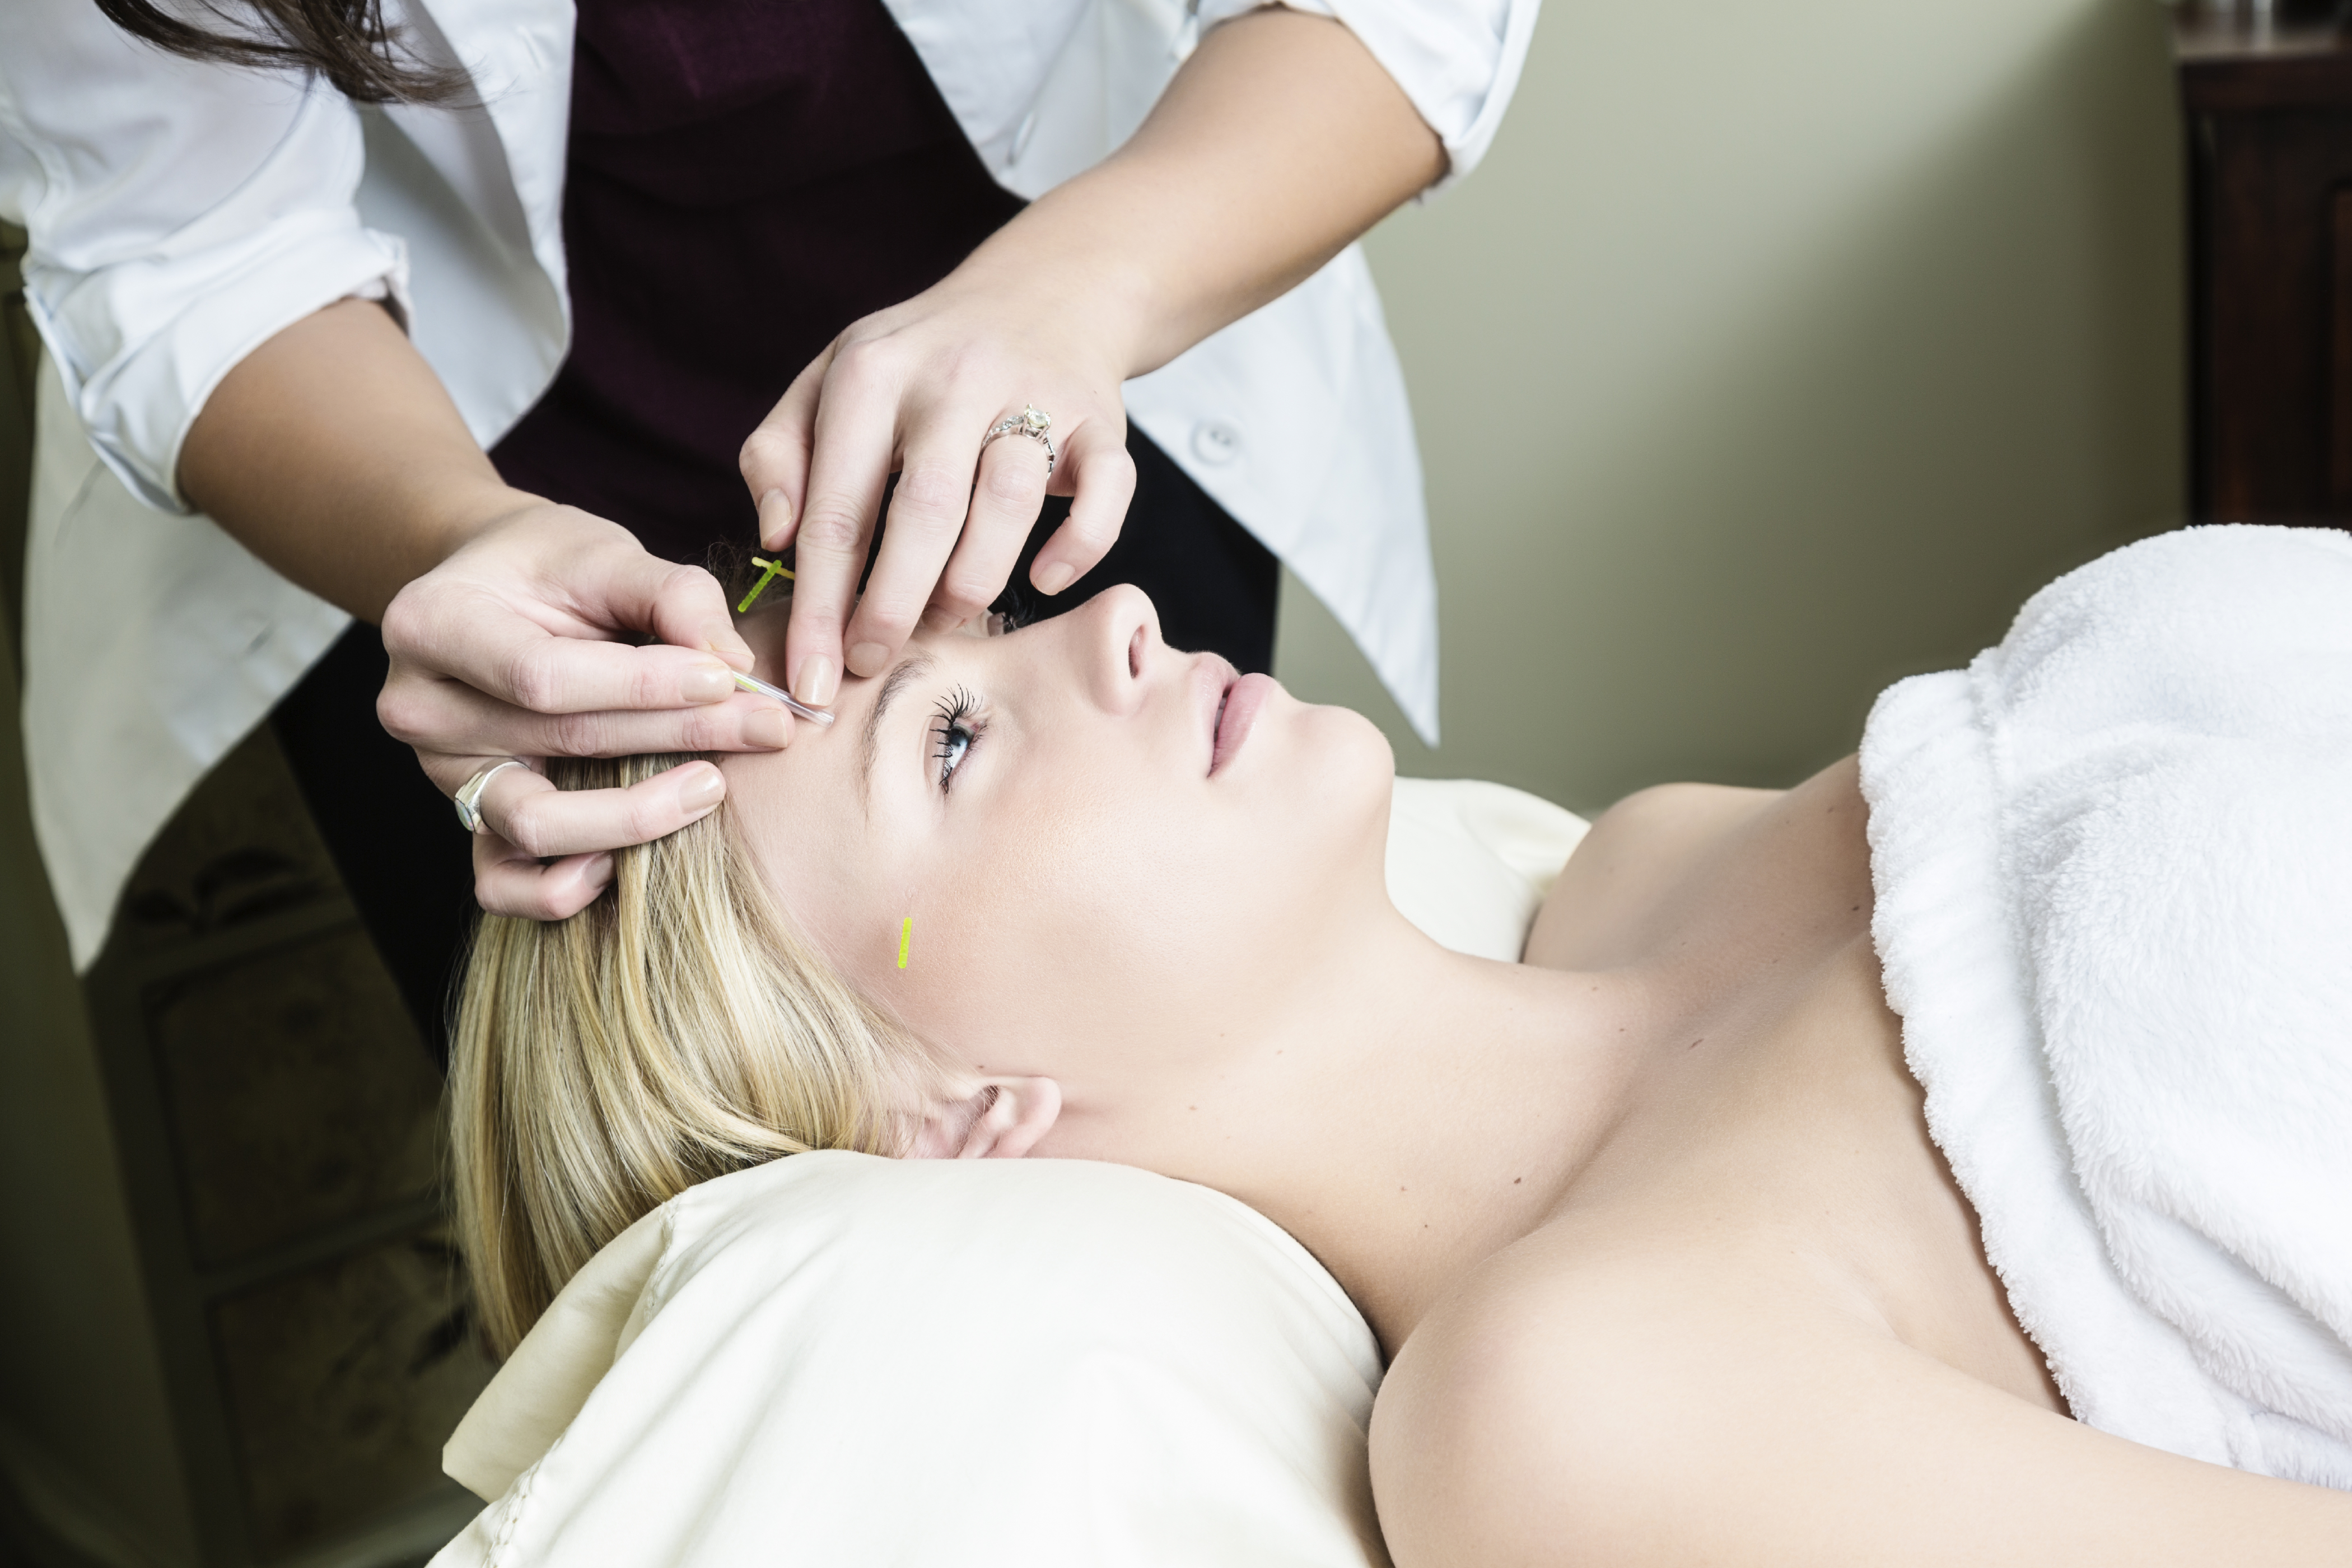 Top 10 Benefits of Acupuncture – Don't Fear the Needles!